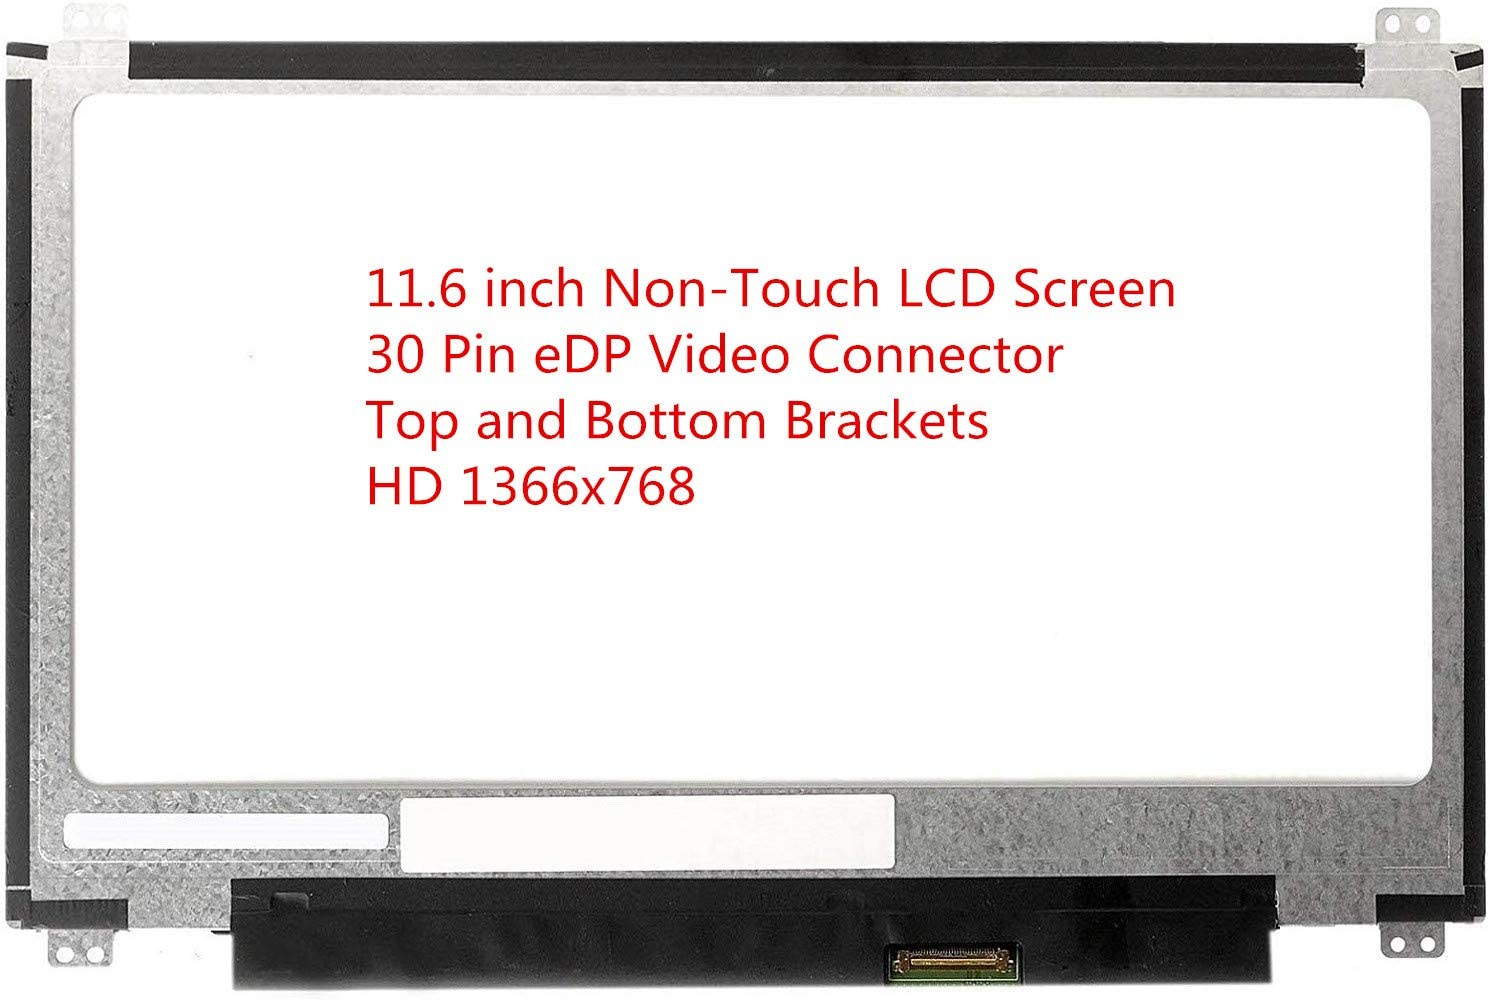 """Rinbers 11.6"""" LED LCD Screen Display Replacement (Non Touch) for ASUS Chromebook C201PA C202 C202S C202SA C223 X205T VIVOBOOK E203MA W202NA N116BGE-EB2 C3 C5 C6 B1 Top and Bottom Brackets (30 Pin)"""